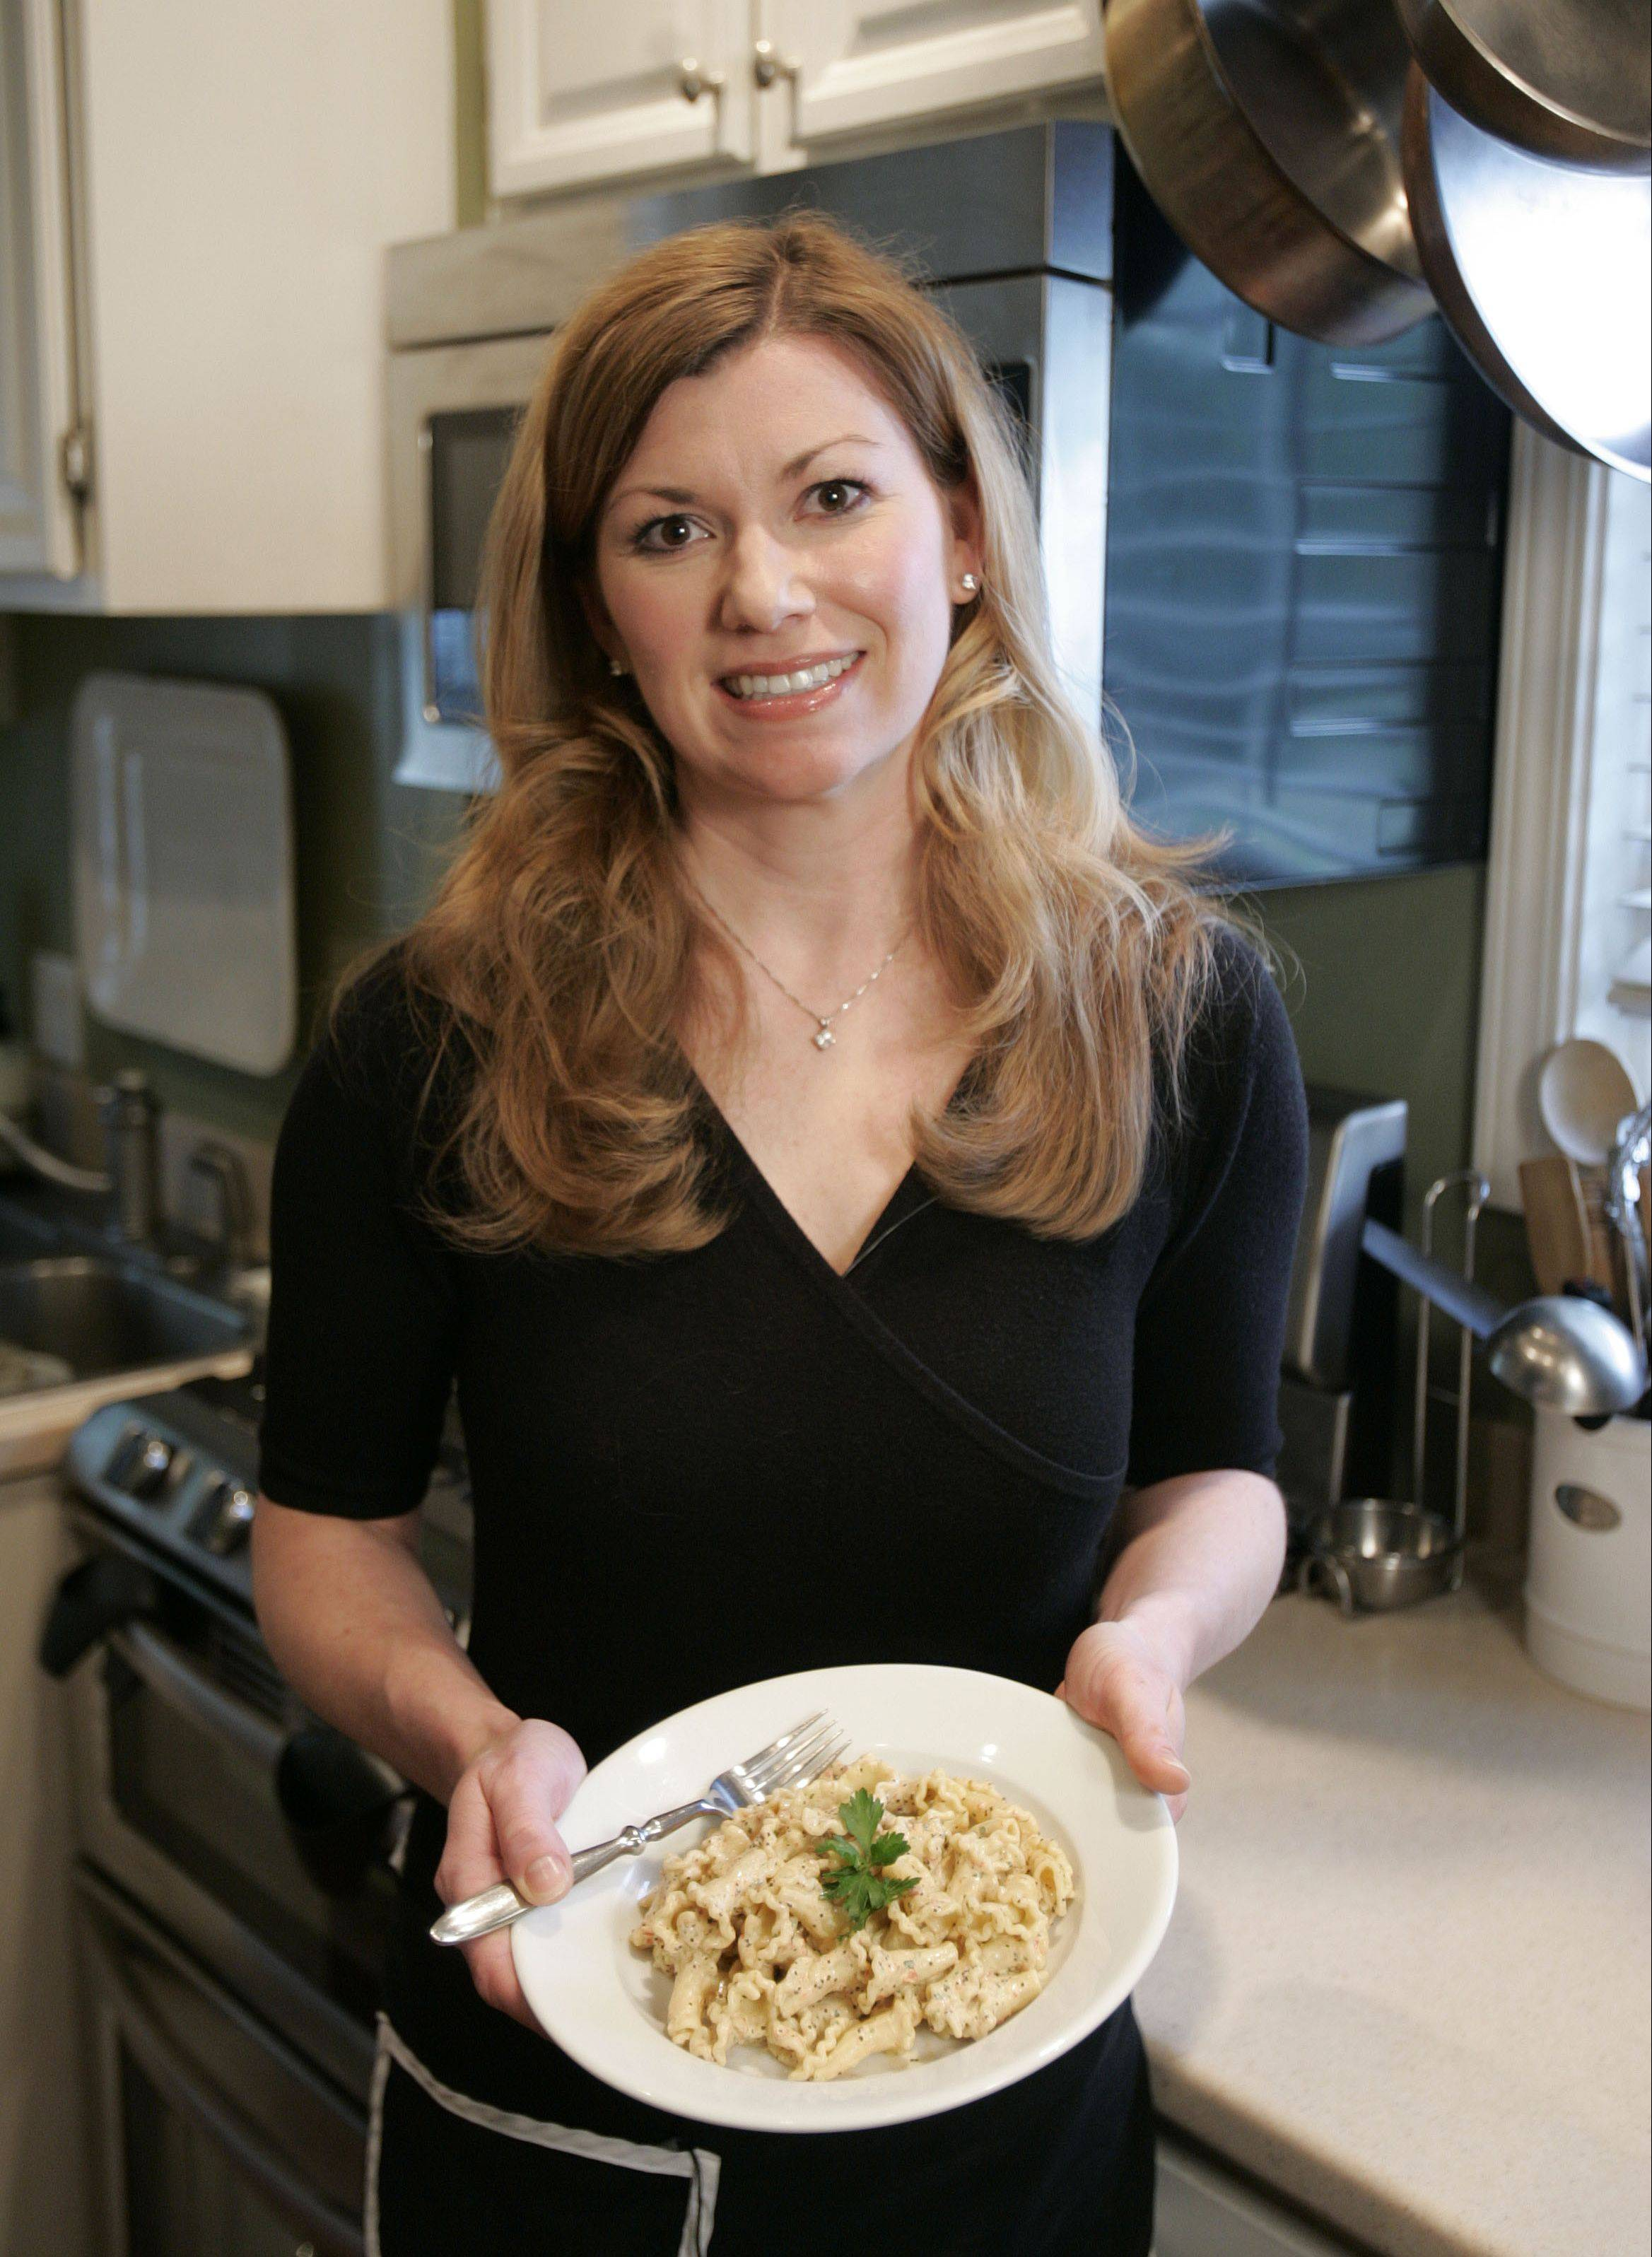 Nicole Kosowski is happiest when she's sharing food, like this pasta salad, with family and friends.